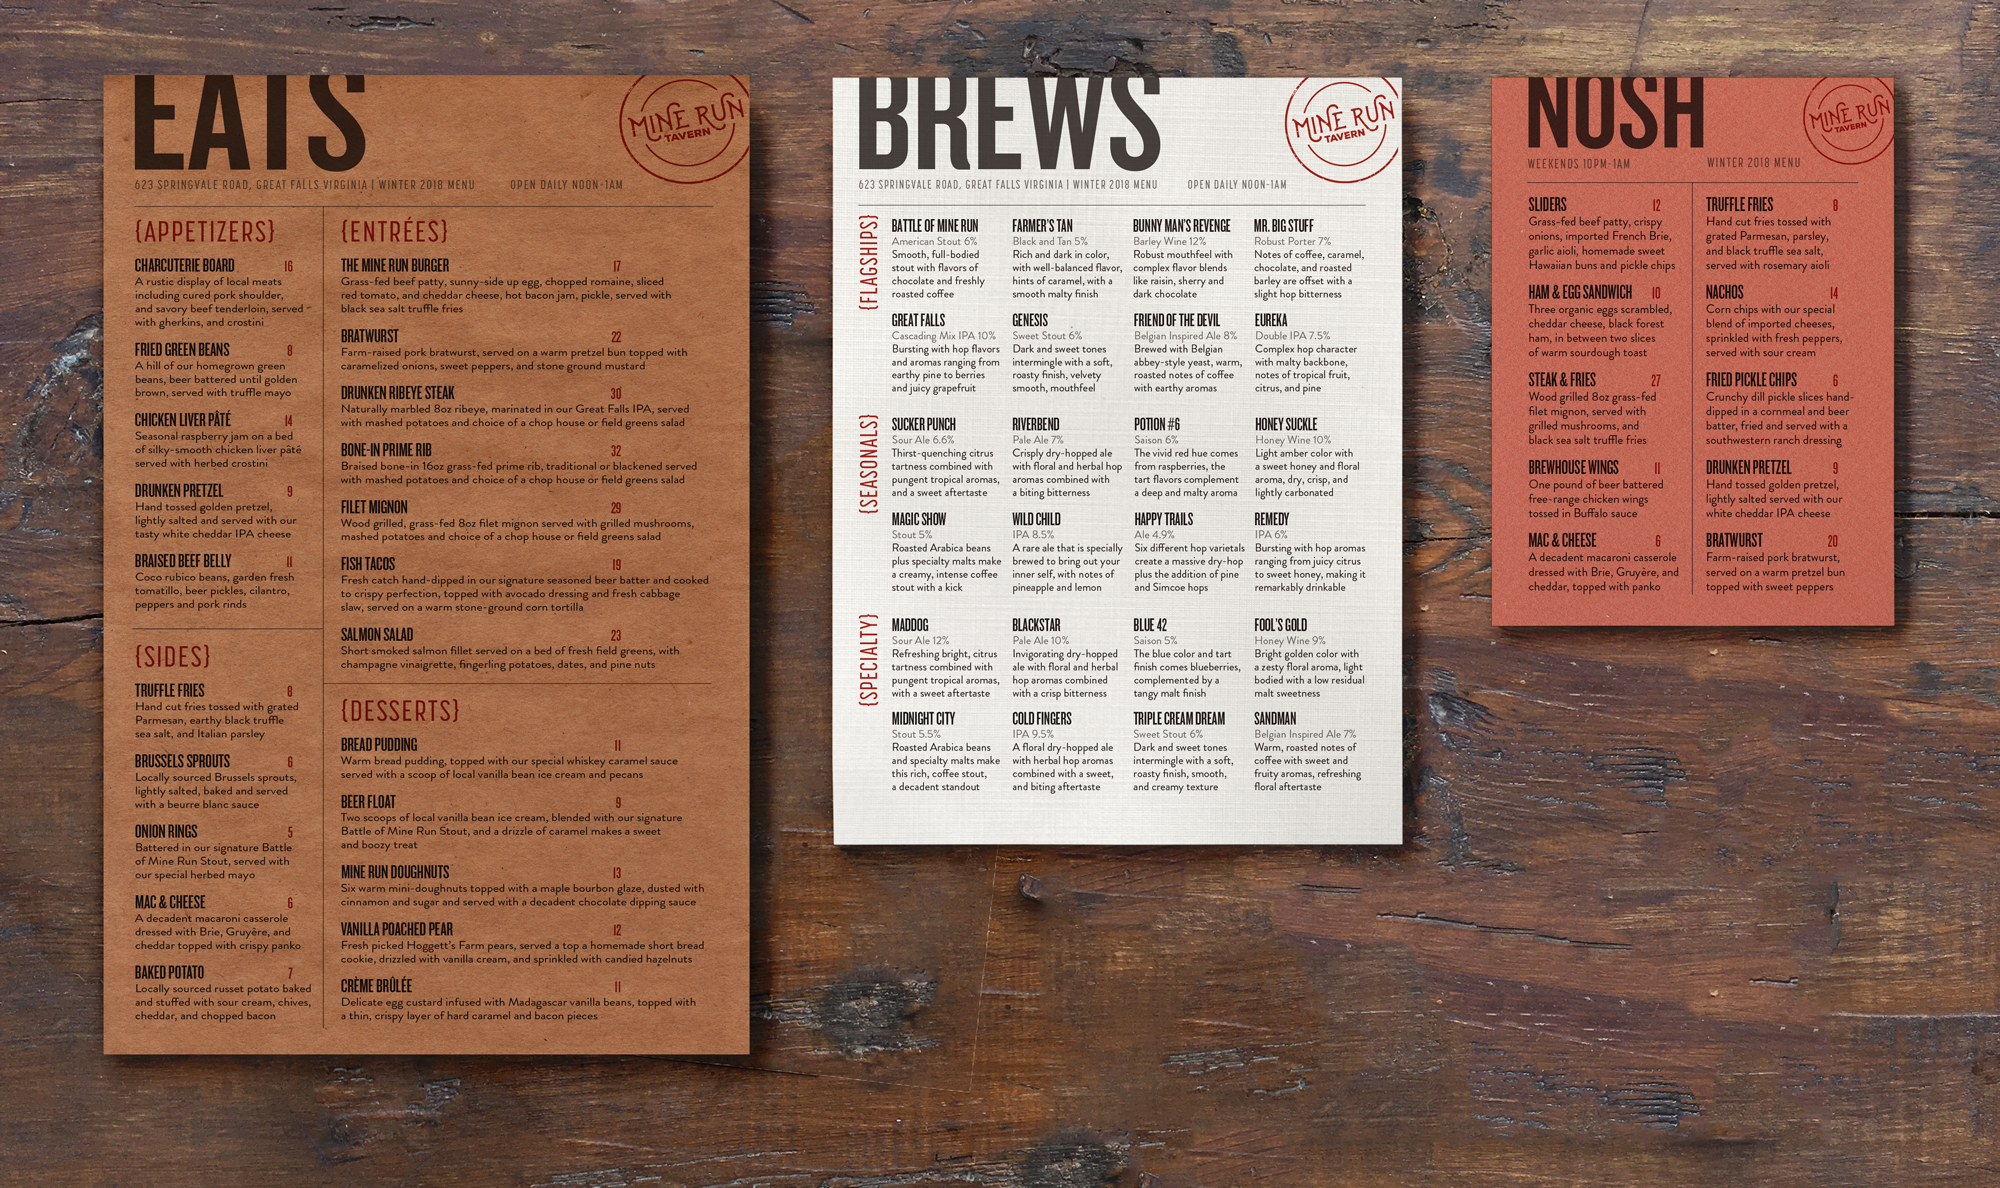 Mine Run Tavern Menus on Behance